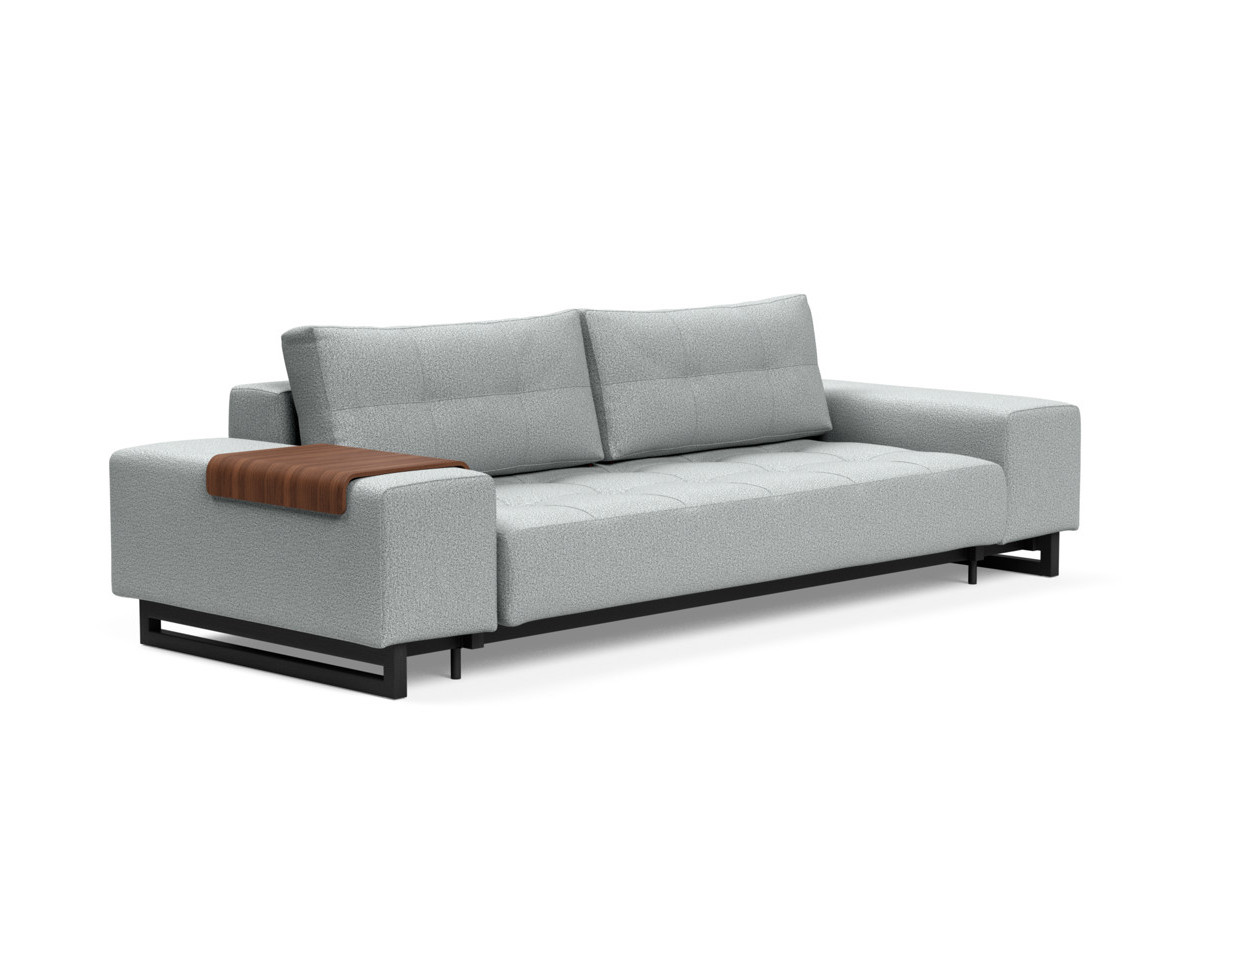 Grand Deluxe Excess Sofa Bed Queen Size Melange Light Gray By Innovation